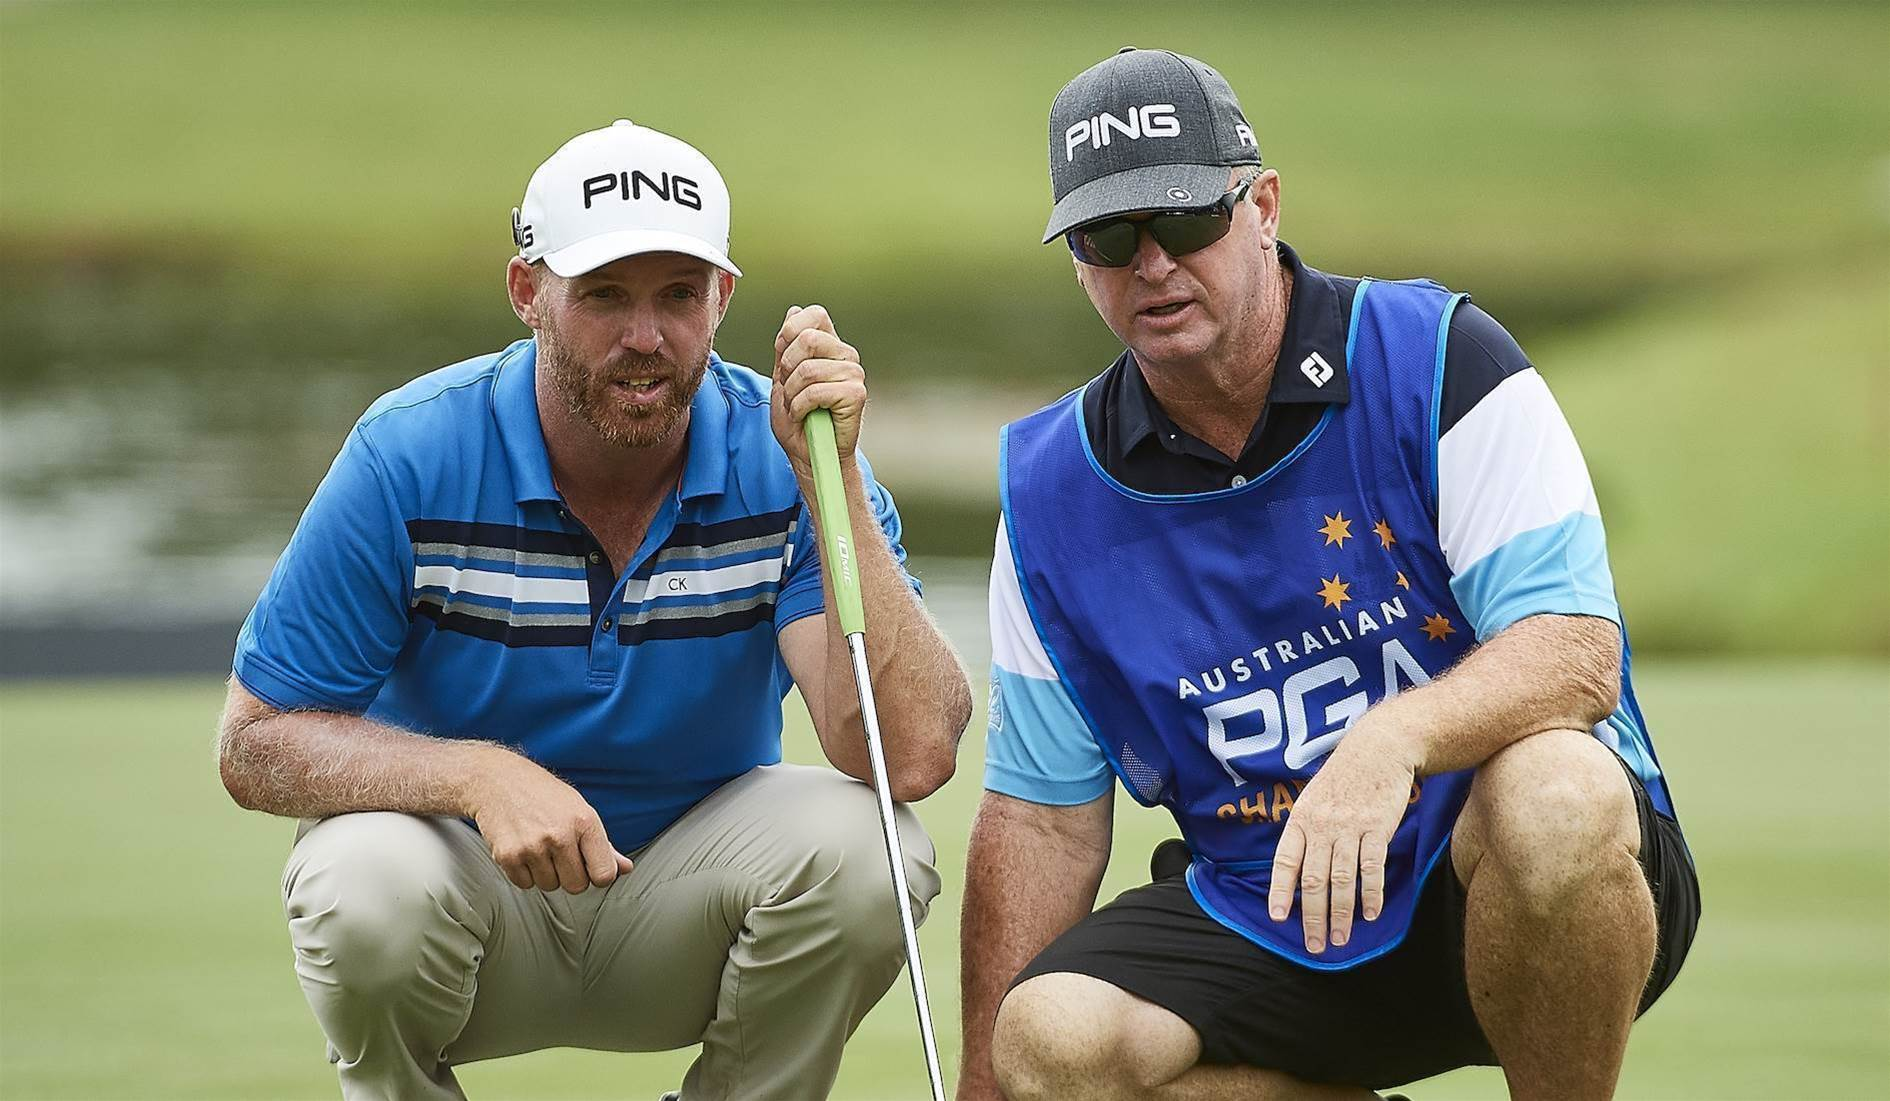 AUS PGA: First round anything but Bland